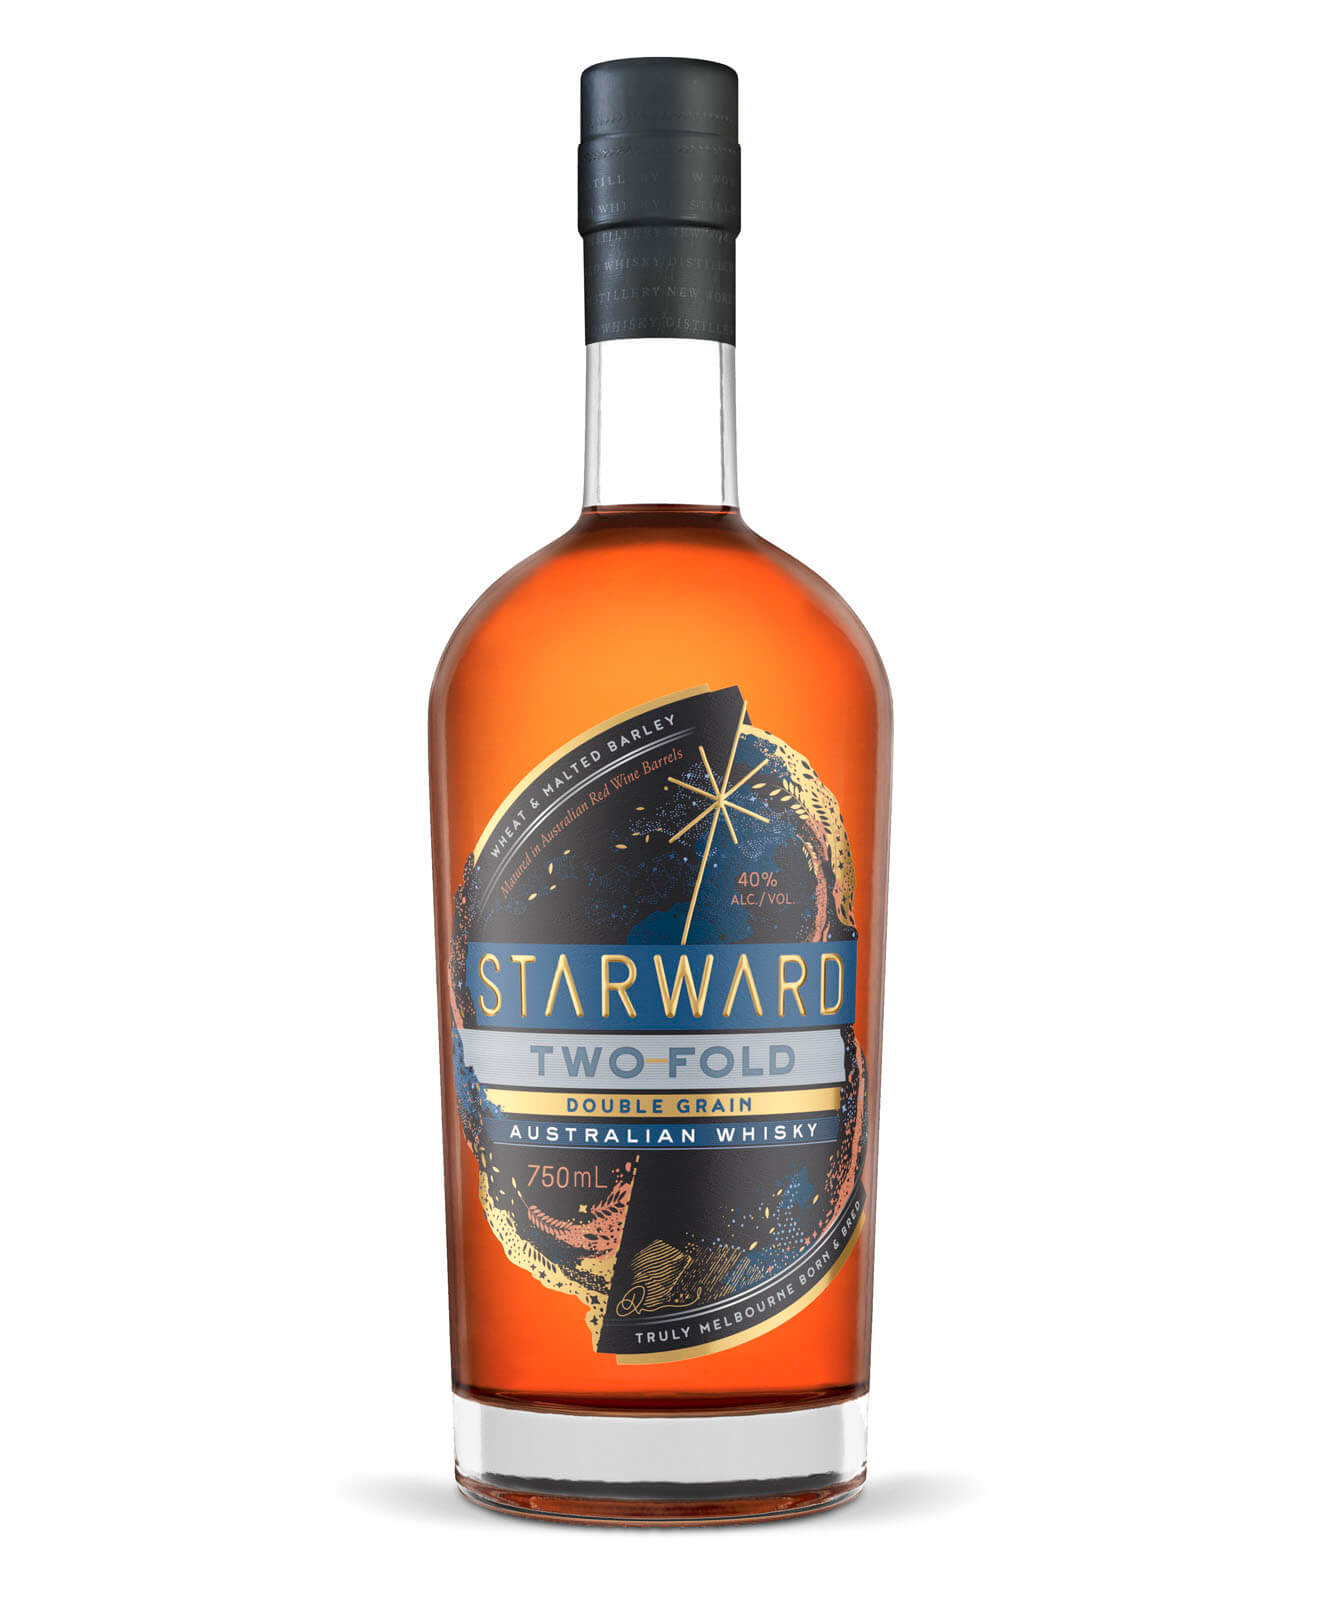 Starward Two-Fold Double Grain Whisky